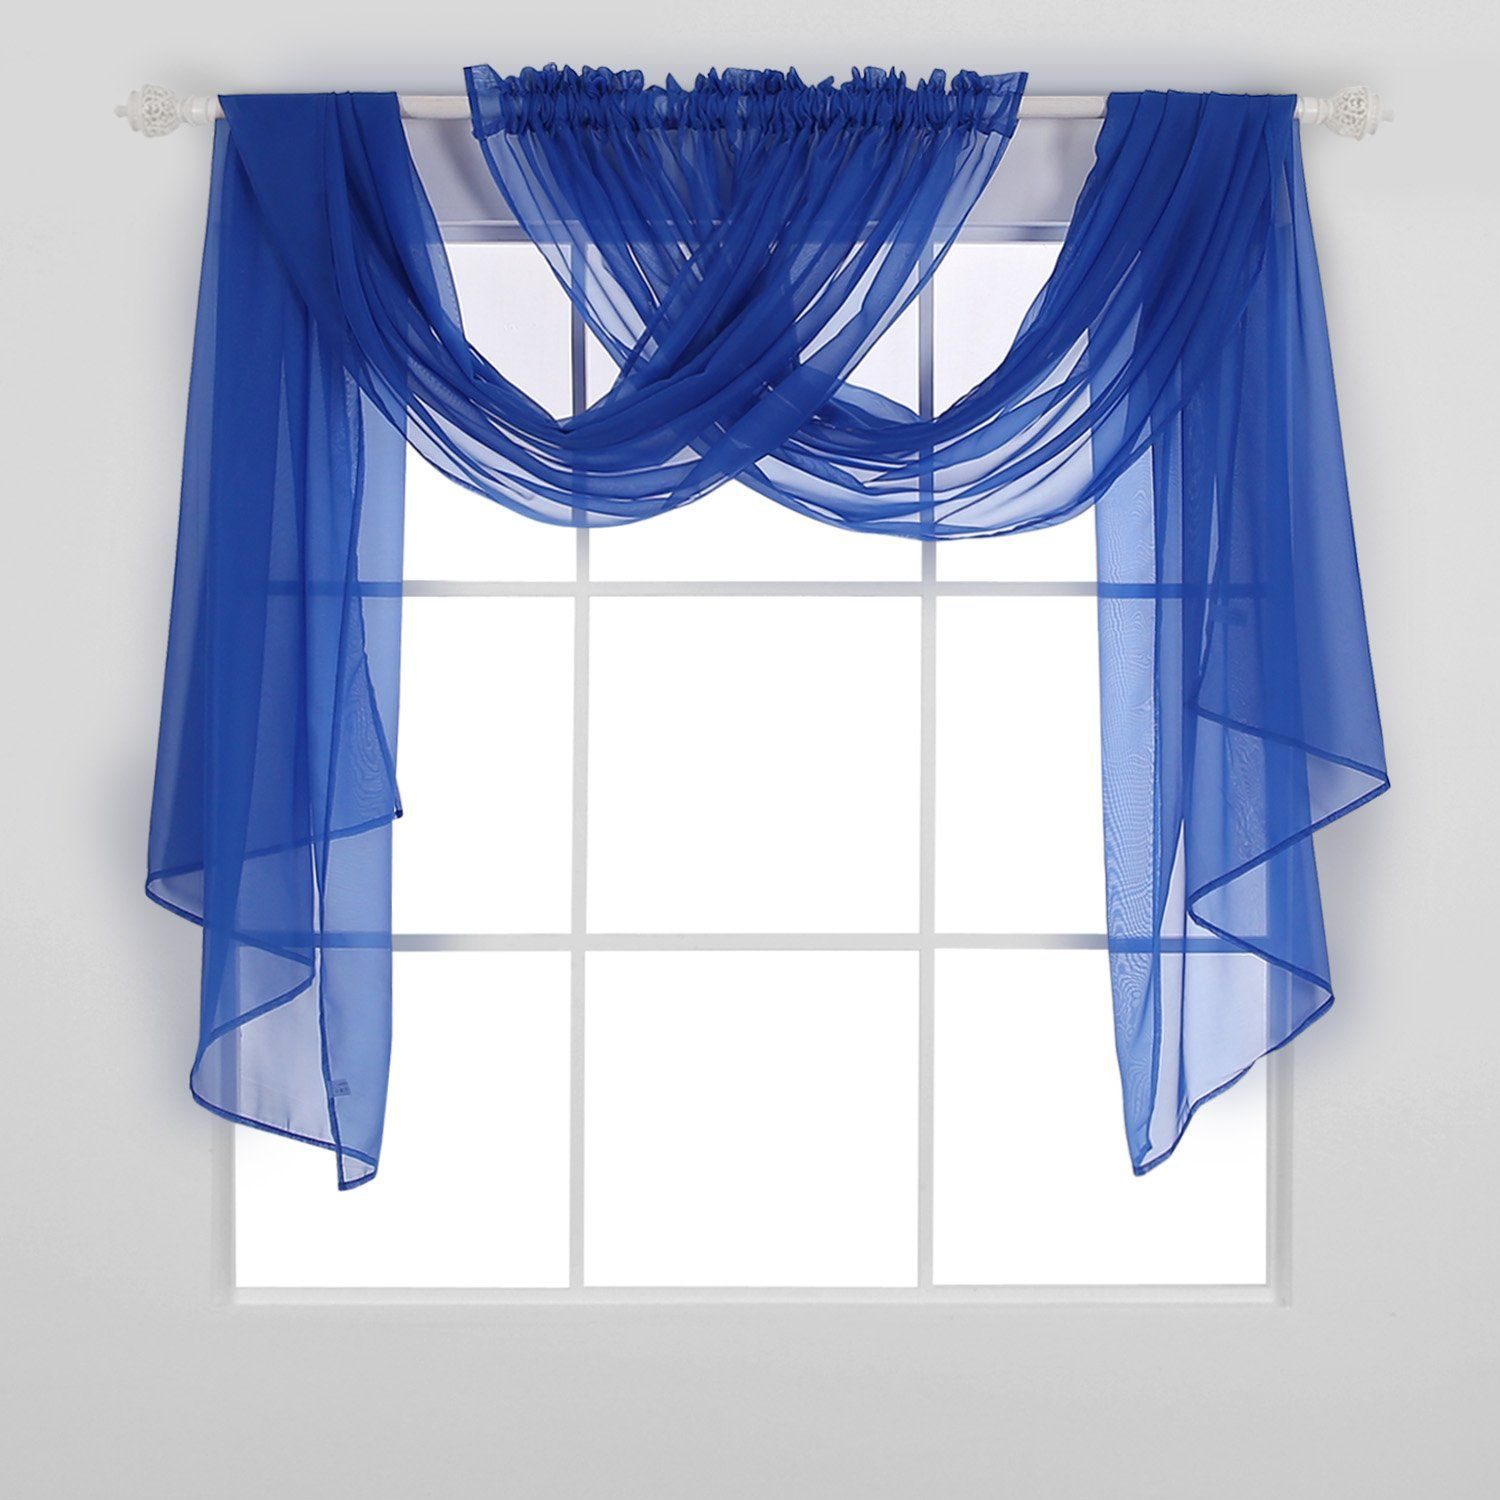 Deconovo Crinkled Voile Draperies Sheer Window Curtains Rod Pocket